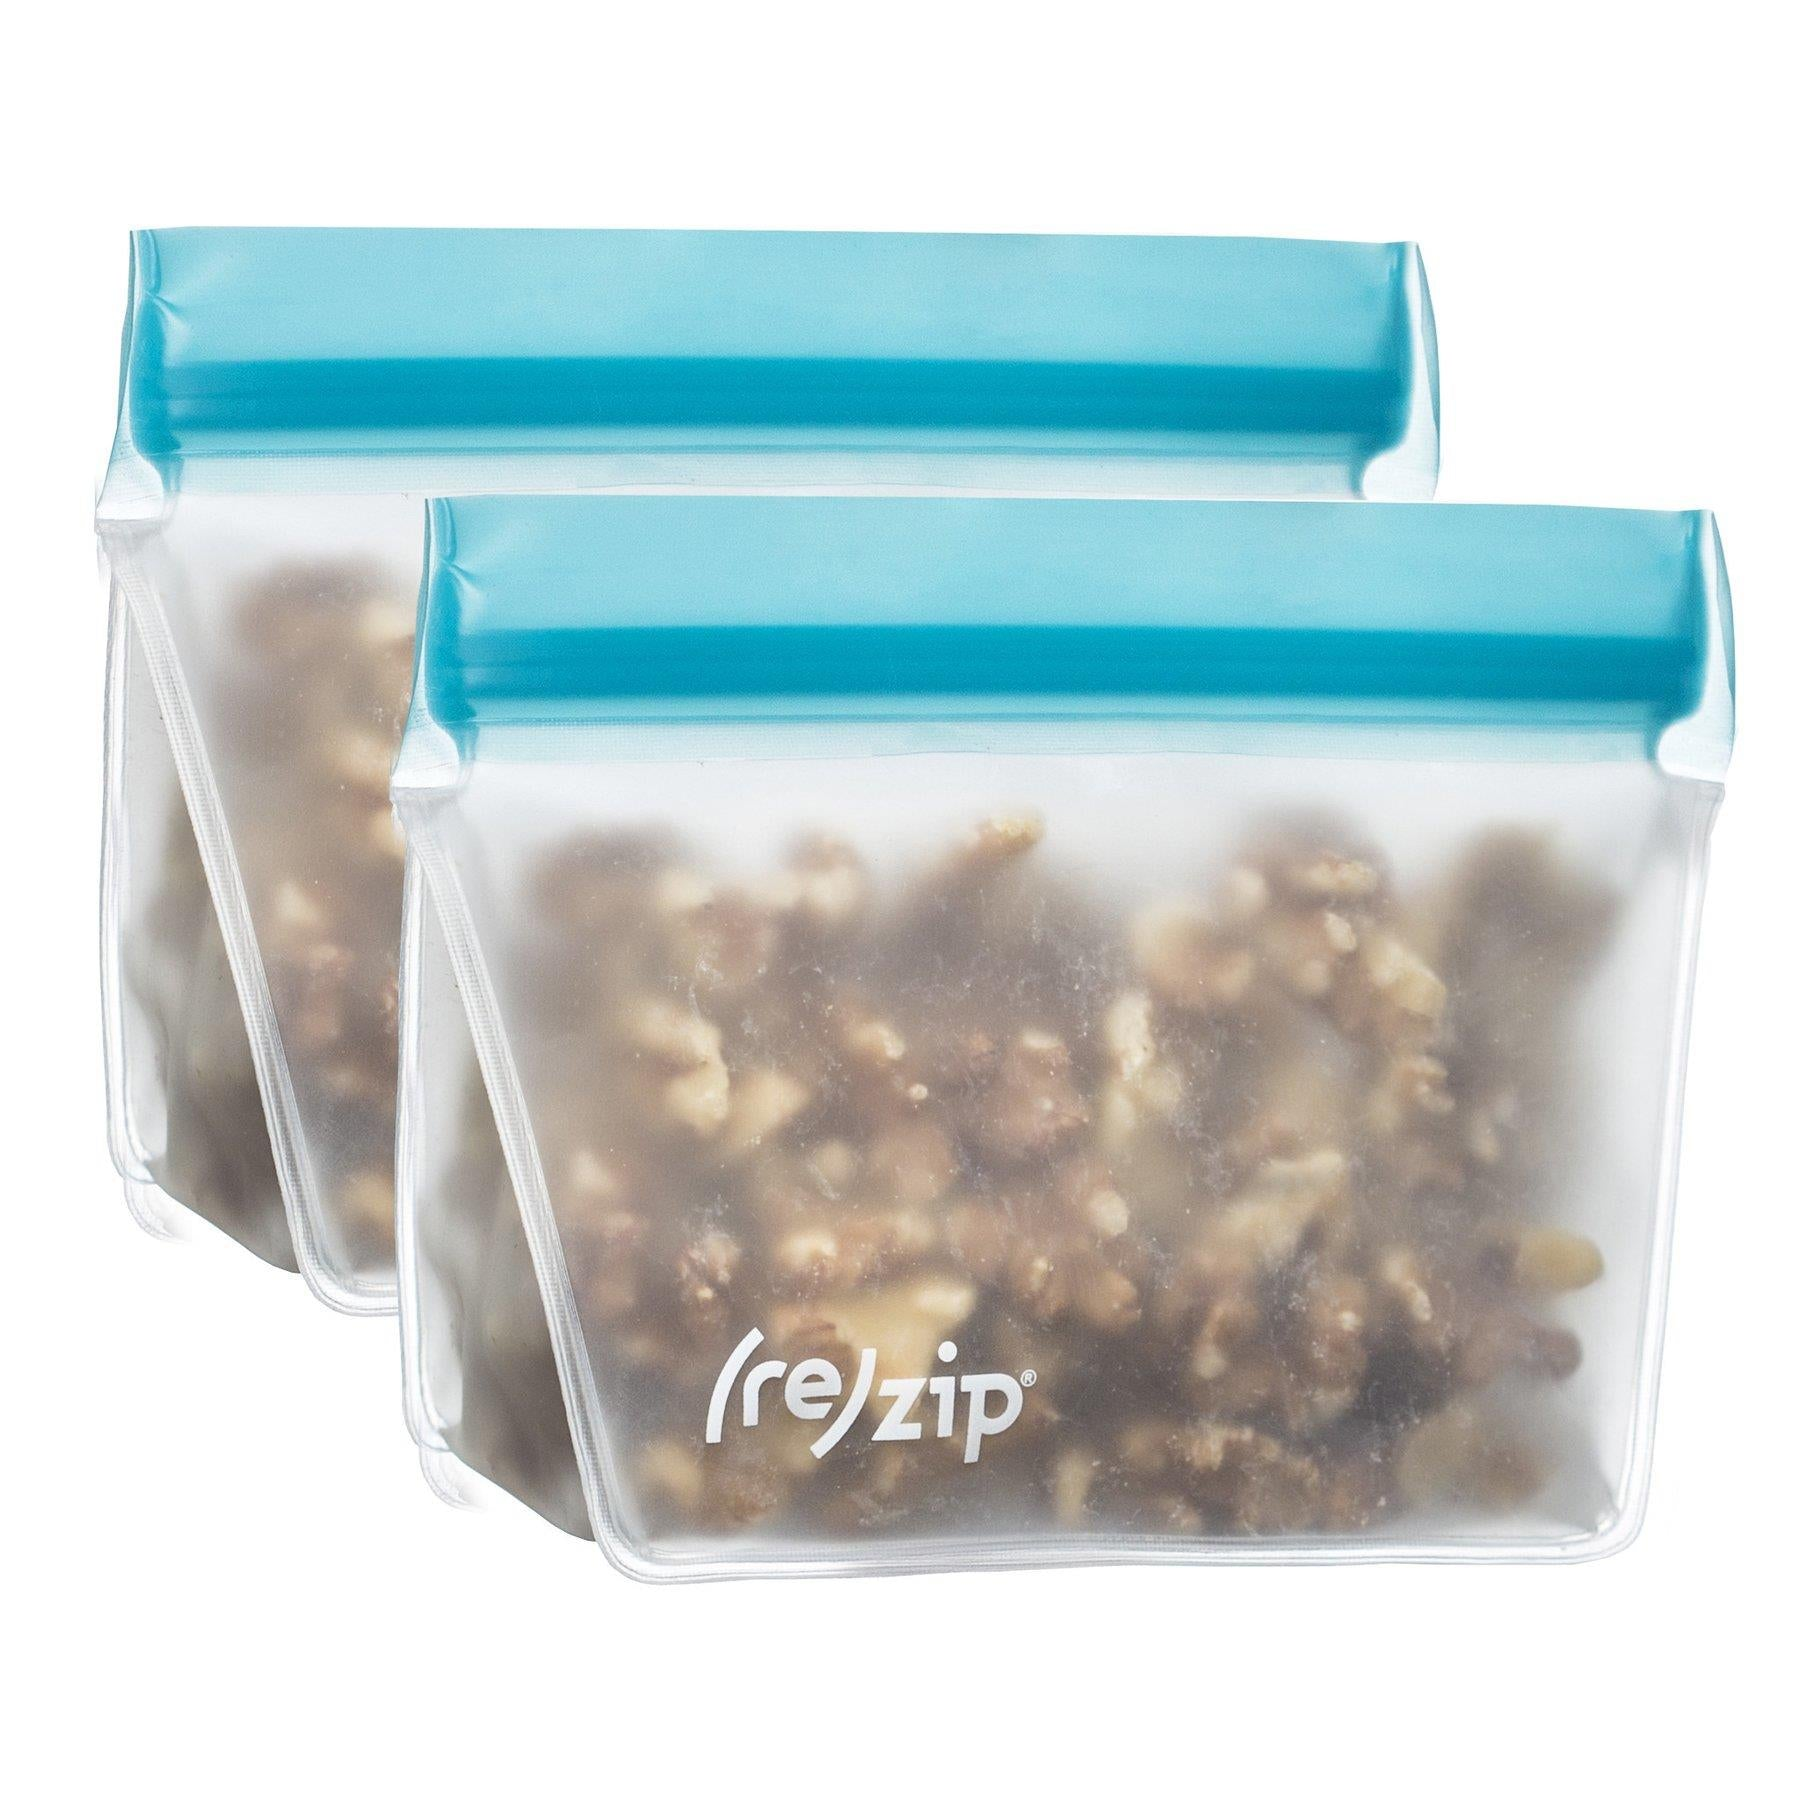 ReZip Stand-Up 1 Cup Leak Proof Reusable Storage Bag